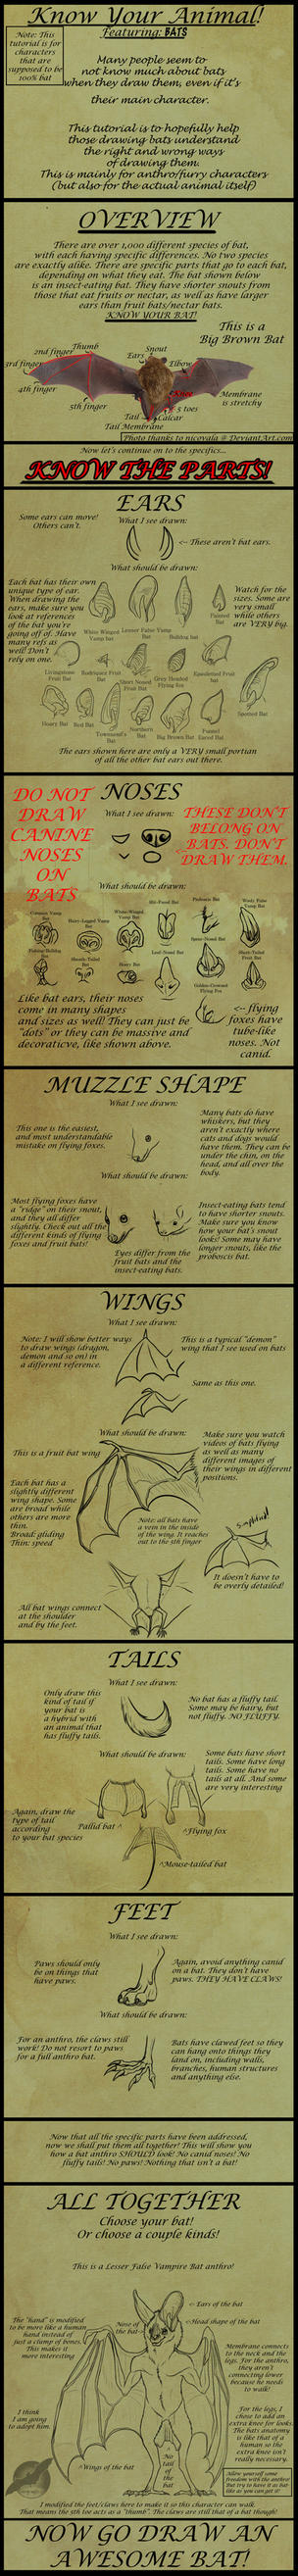 How to Draw Correct Bat Parts on Anthros by shorty-antics-27